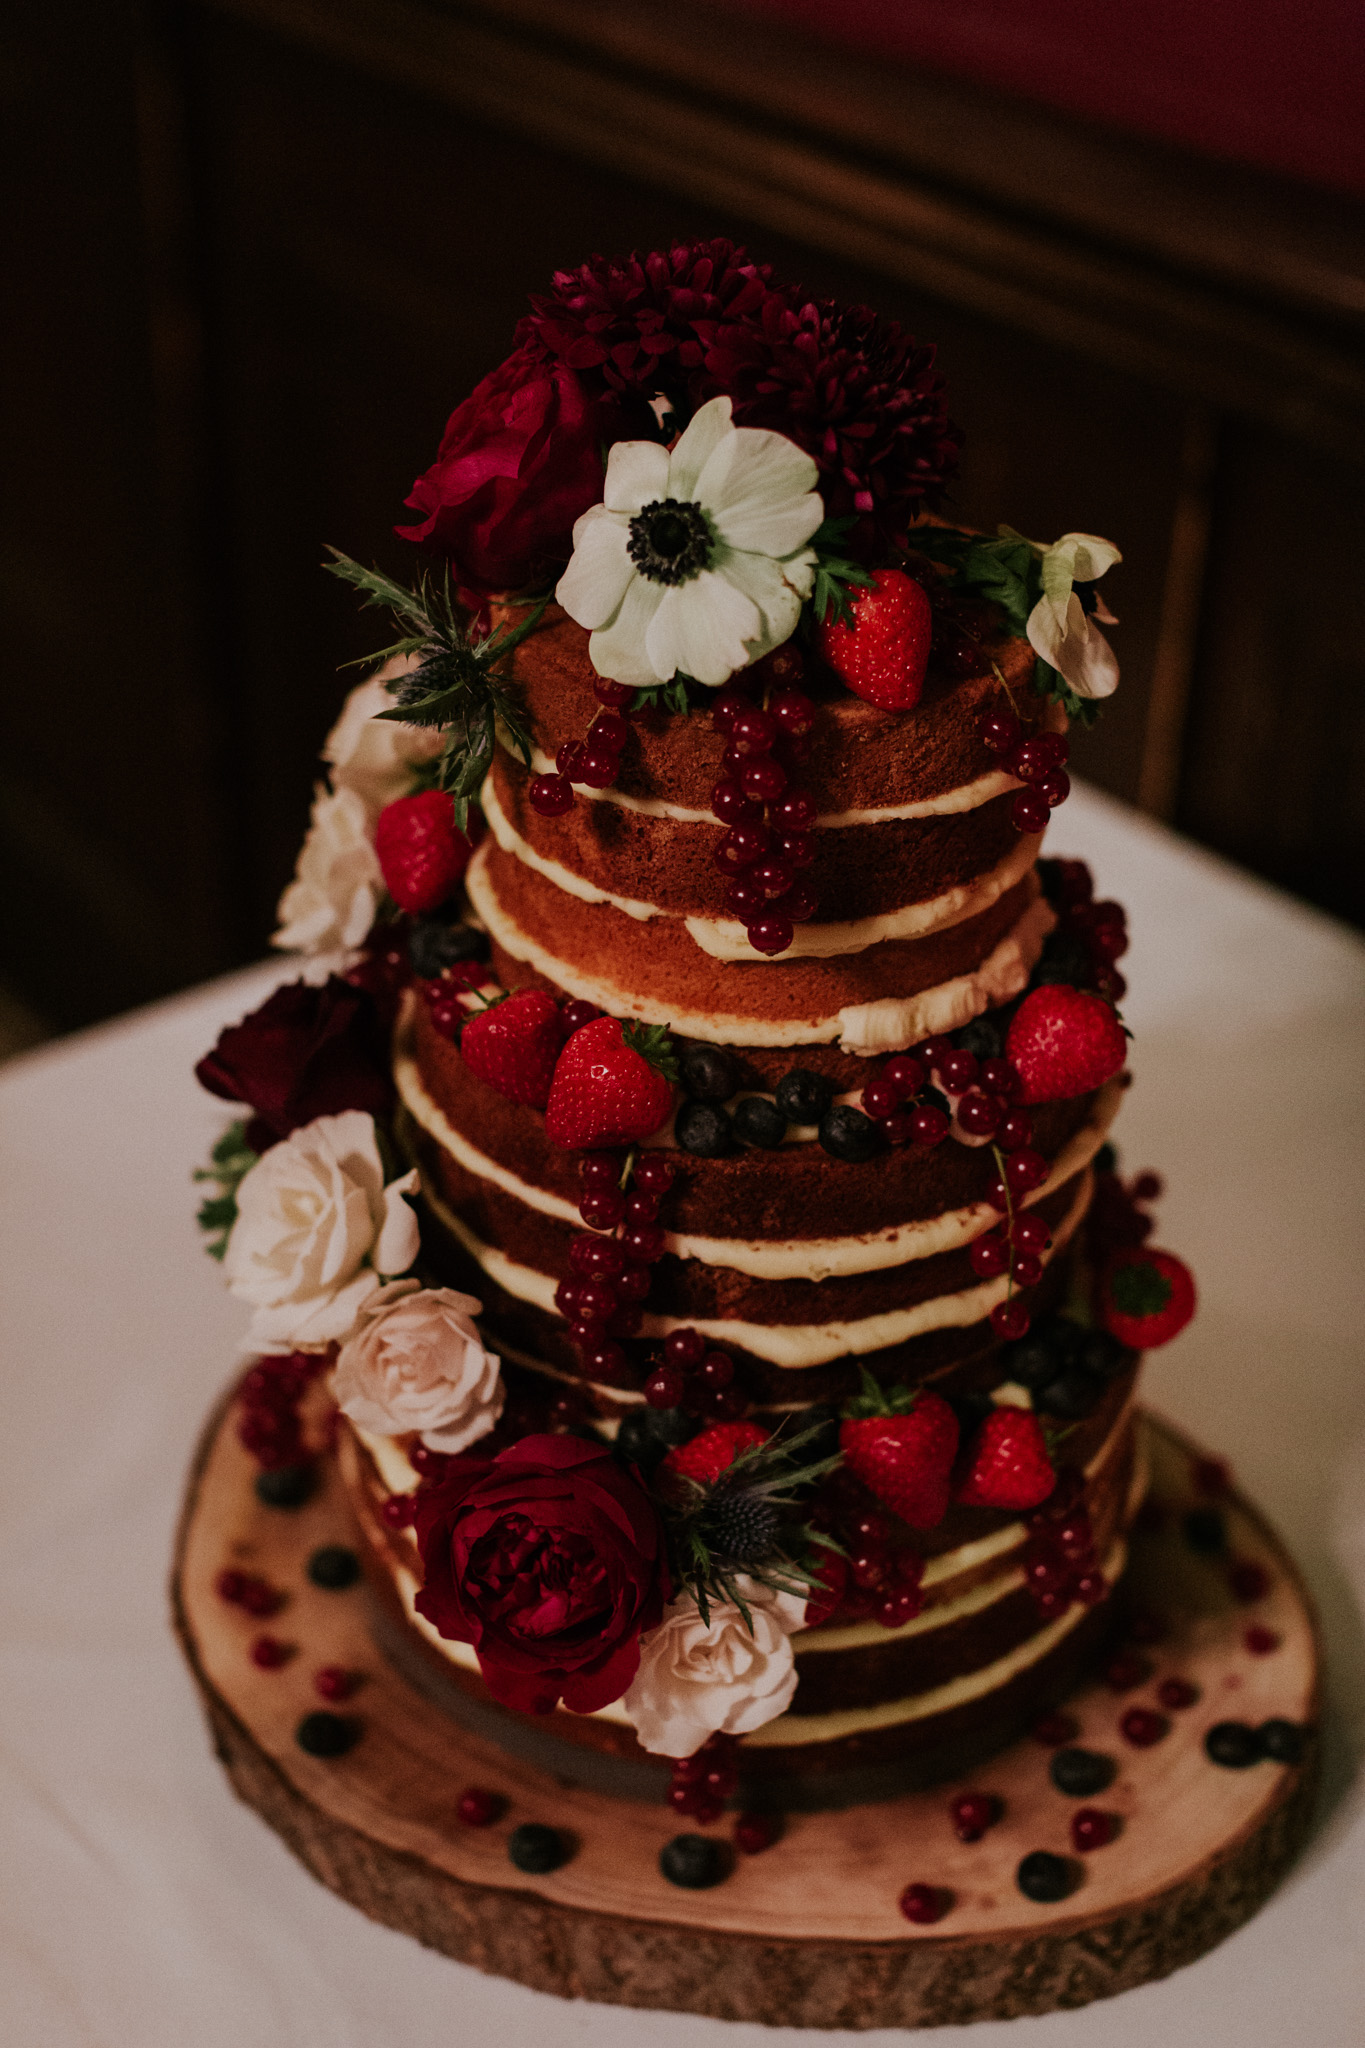 Winter naked wedding cake decorated in seasonal red and white flowers. Photo by Maja Tsolo